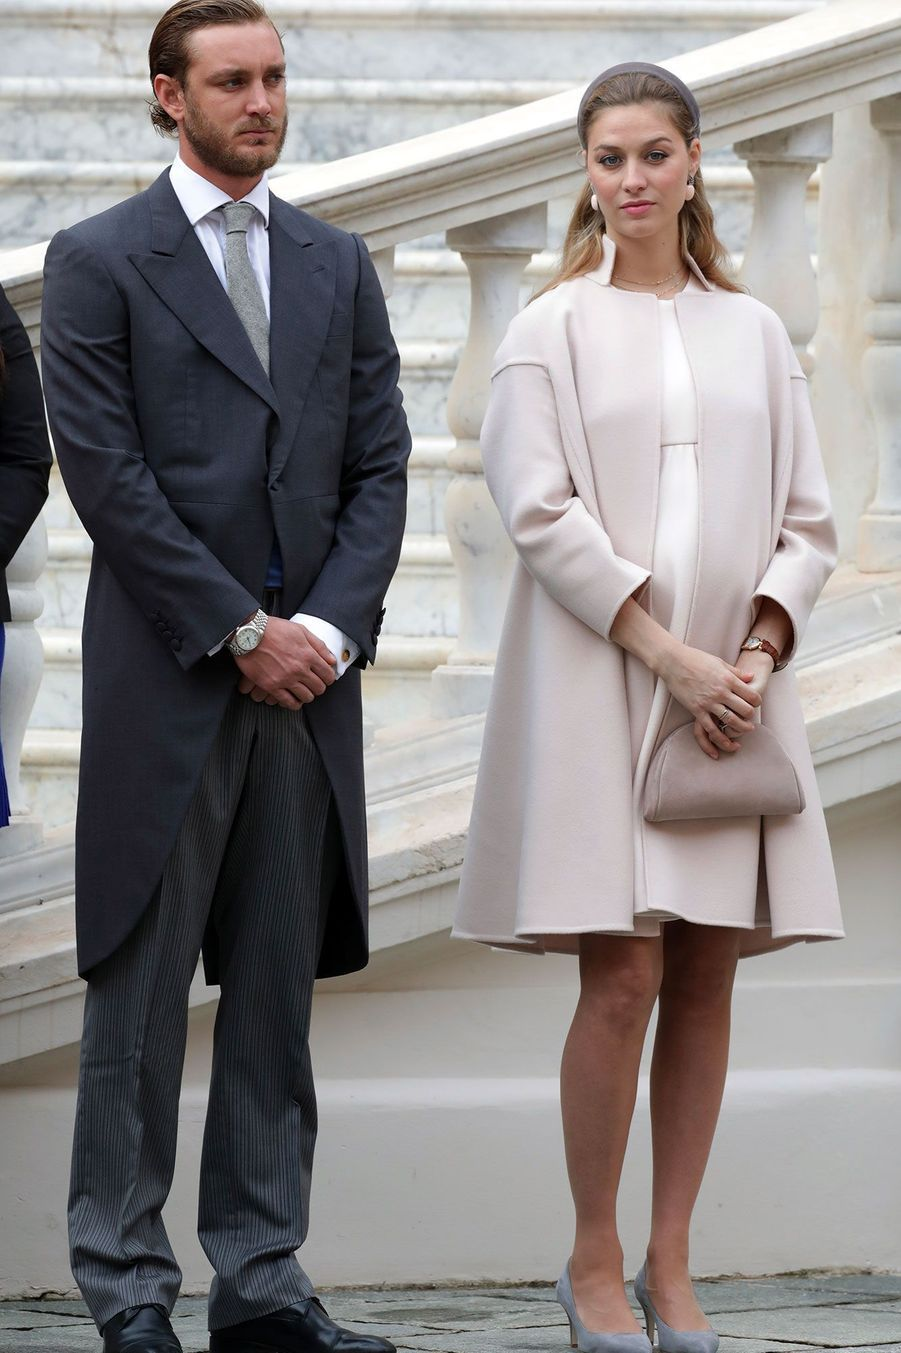 Pierre et Beatrice Casiraghi